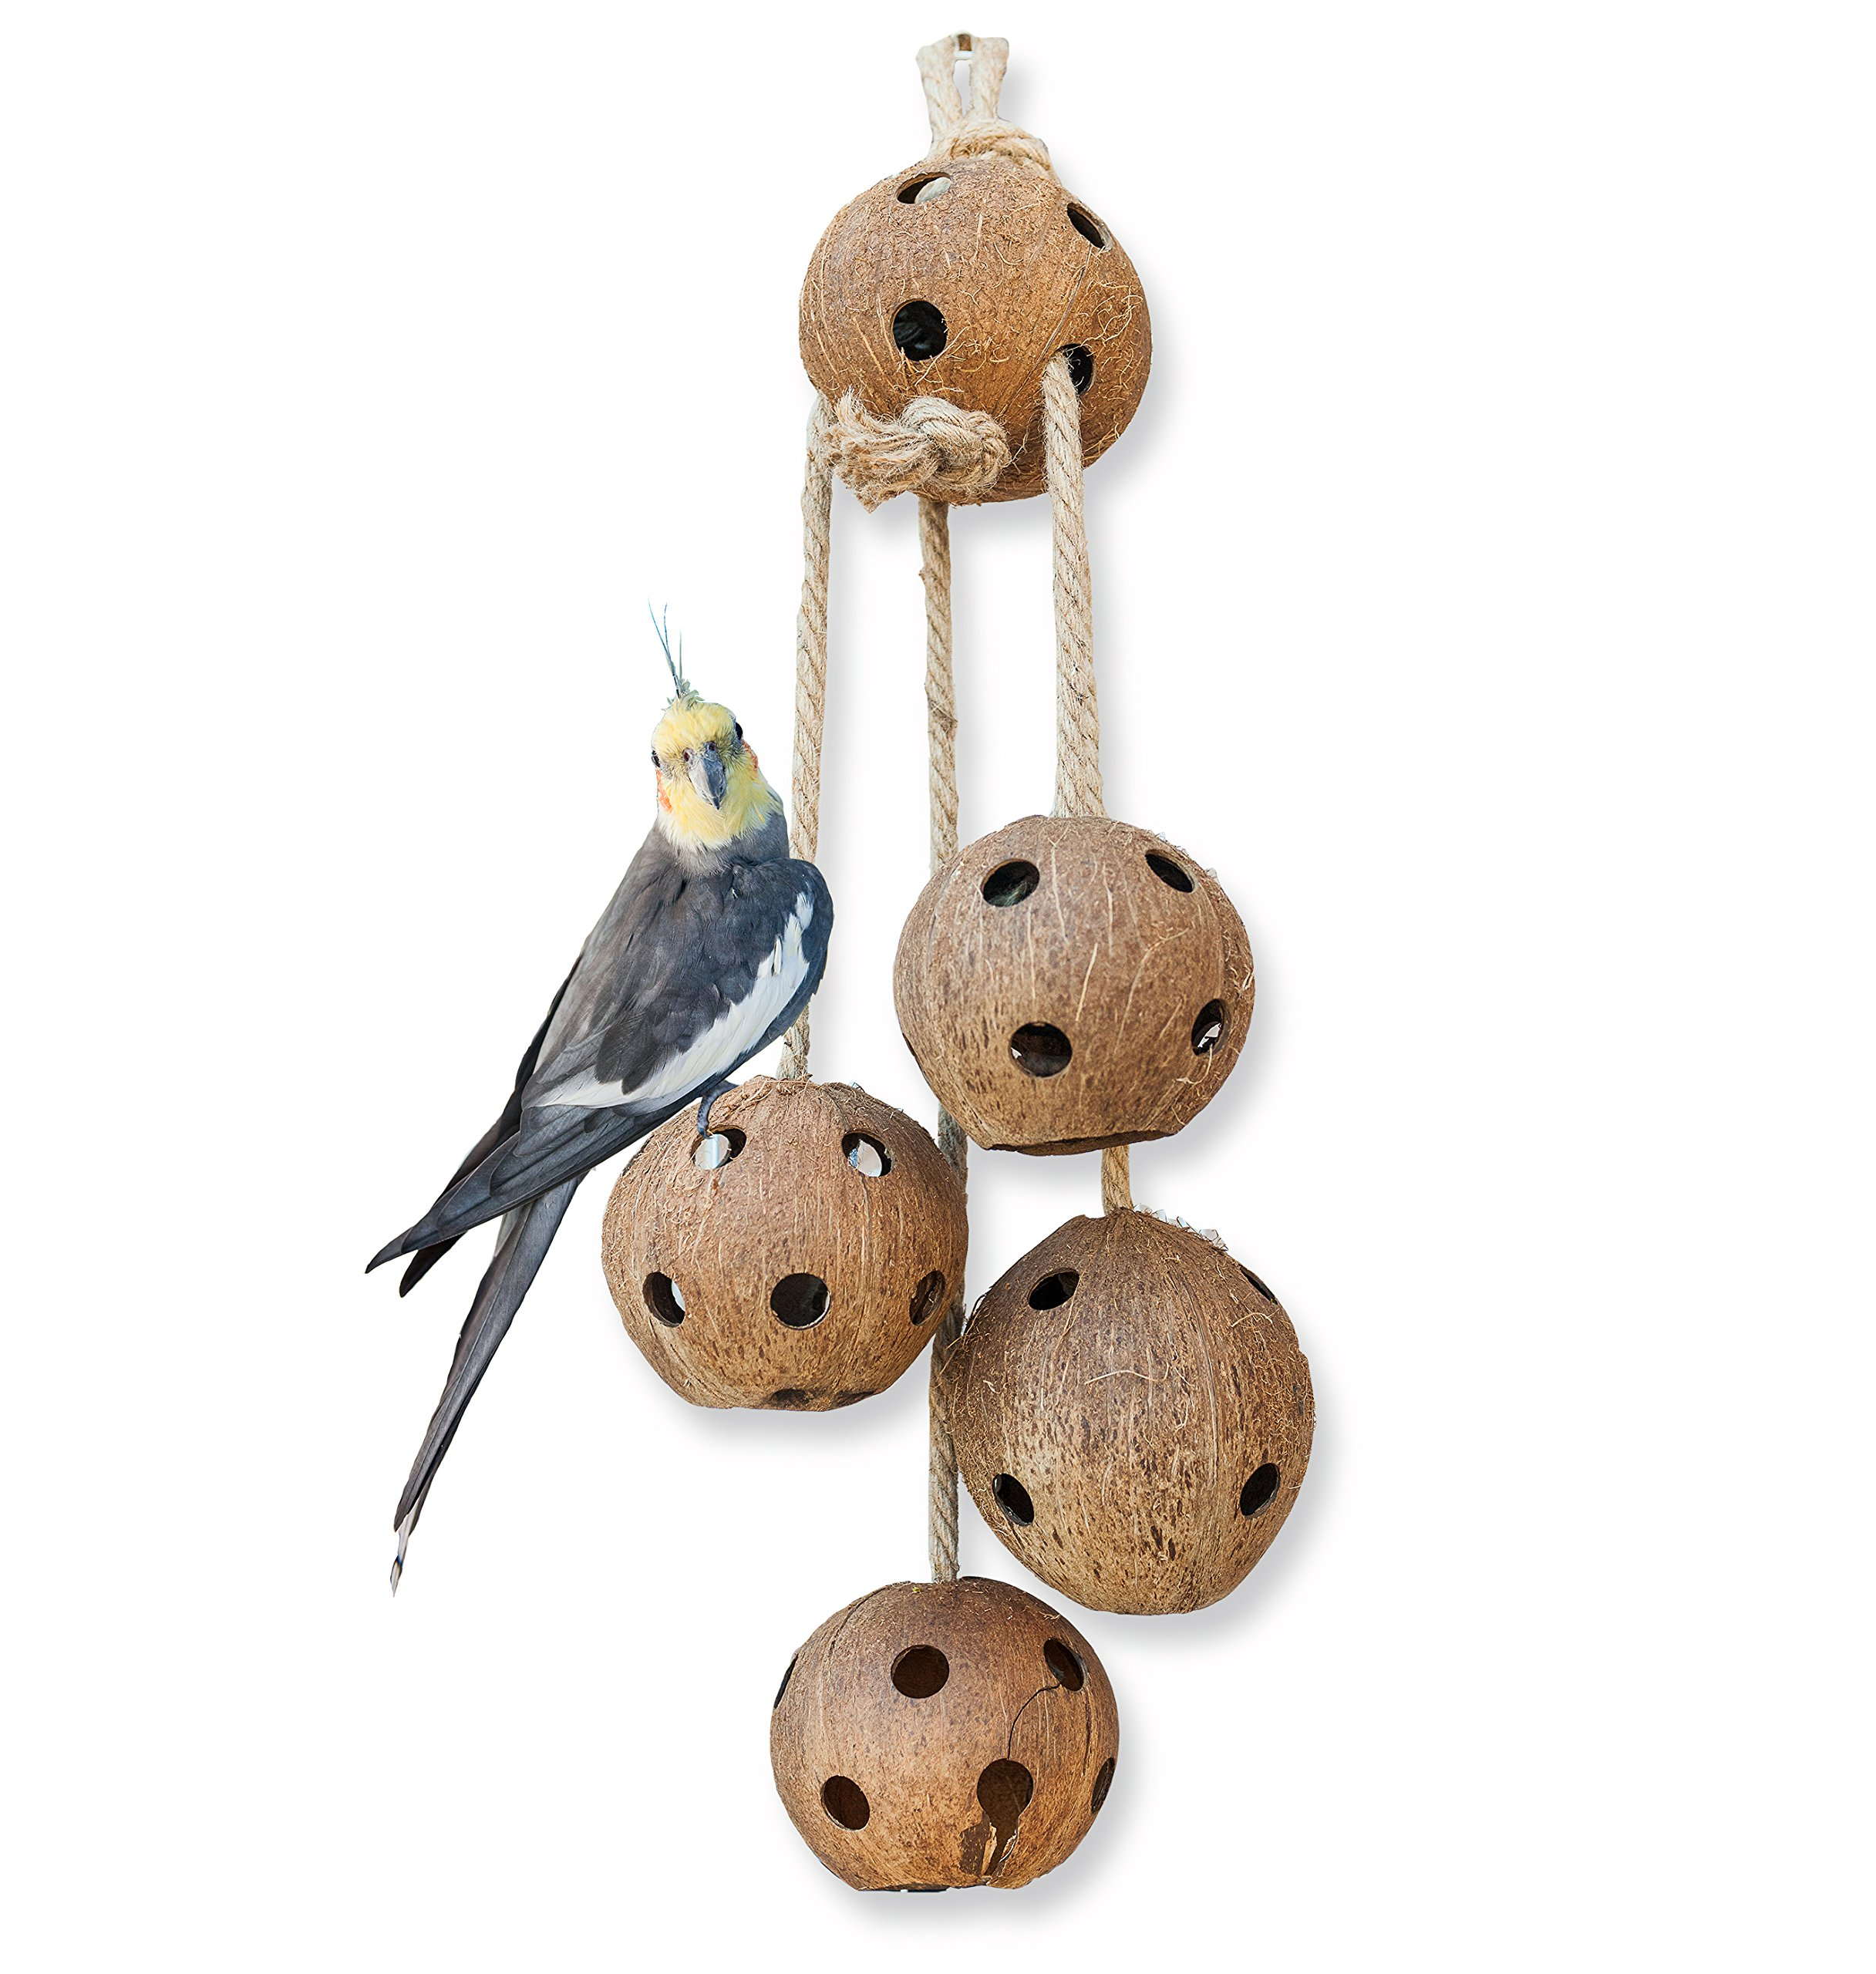 Pet Magasin Hand-Made Heavy Duty Bird Toys for Large Birds Parrot Cage Bite Toys African Grey Macaws Cockatoos by Pet Magasin